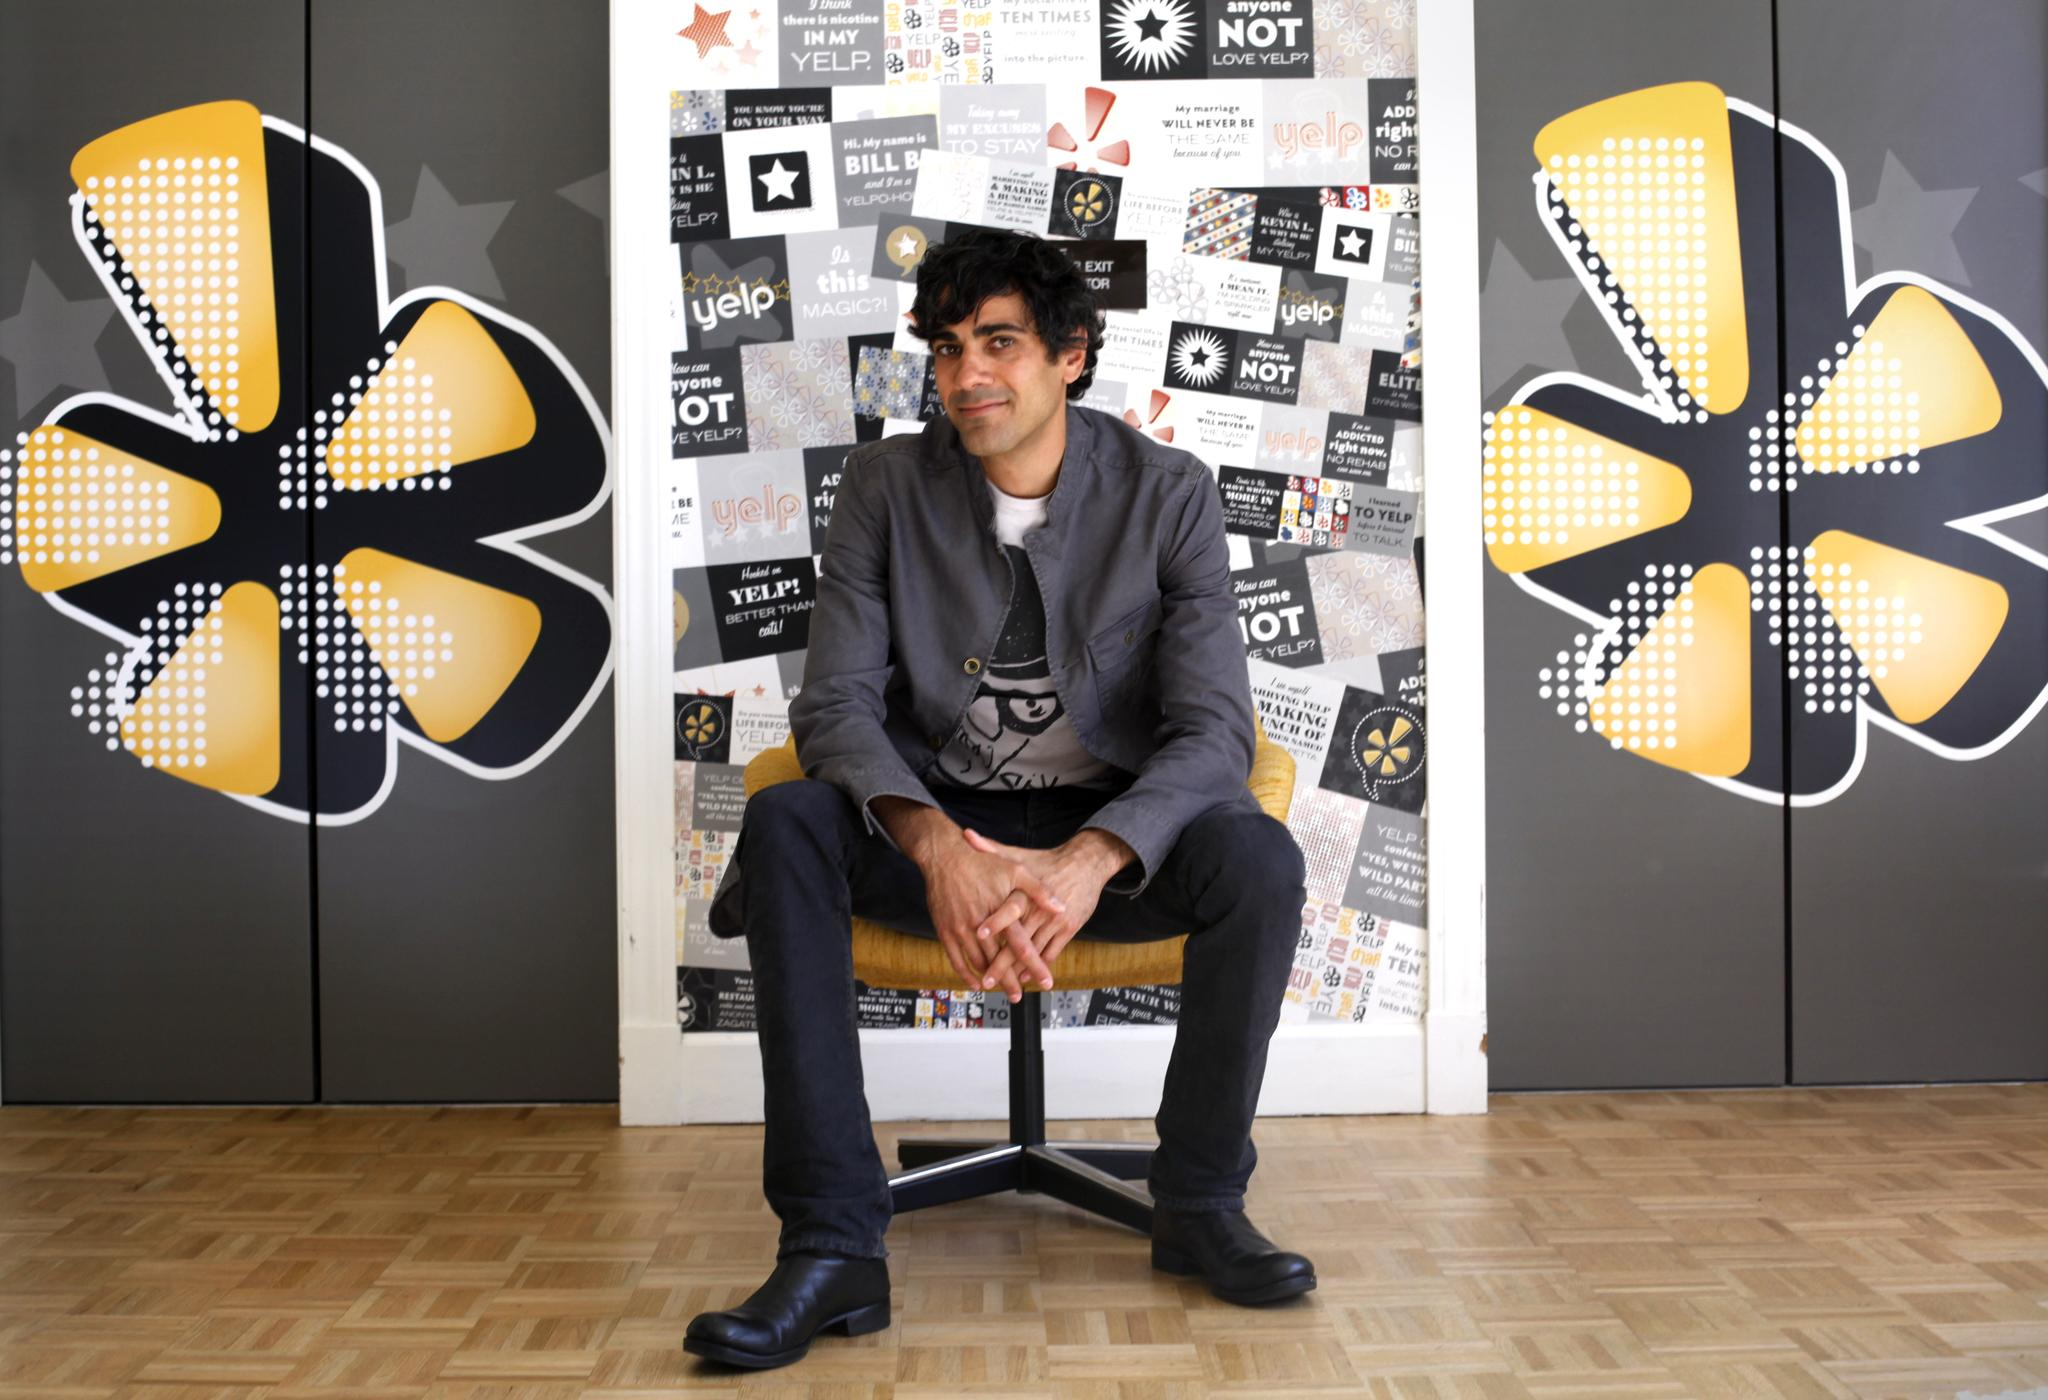 Yelp CEO Jeremy Stoppelman is photographed at the company's headquarters in San Francisco, Calif., Thursday, October 6, 2011. Ran on: 11-18-2011 Yelp CEO Jeremy Stoppelman sits at the company's headquarters in San Francisco.